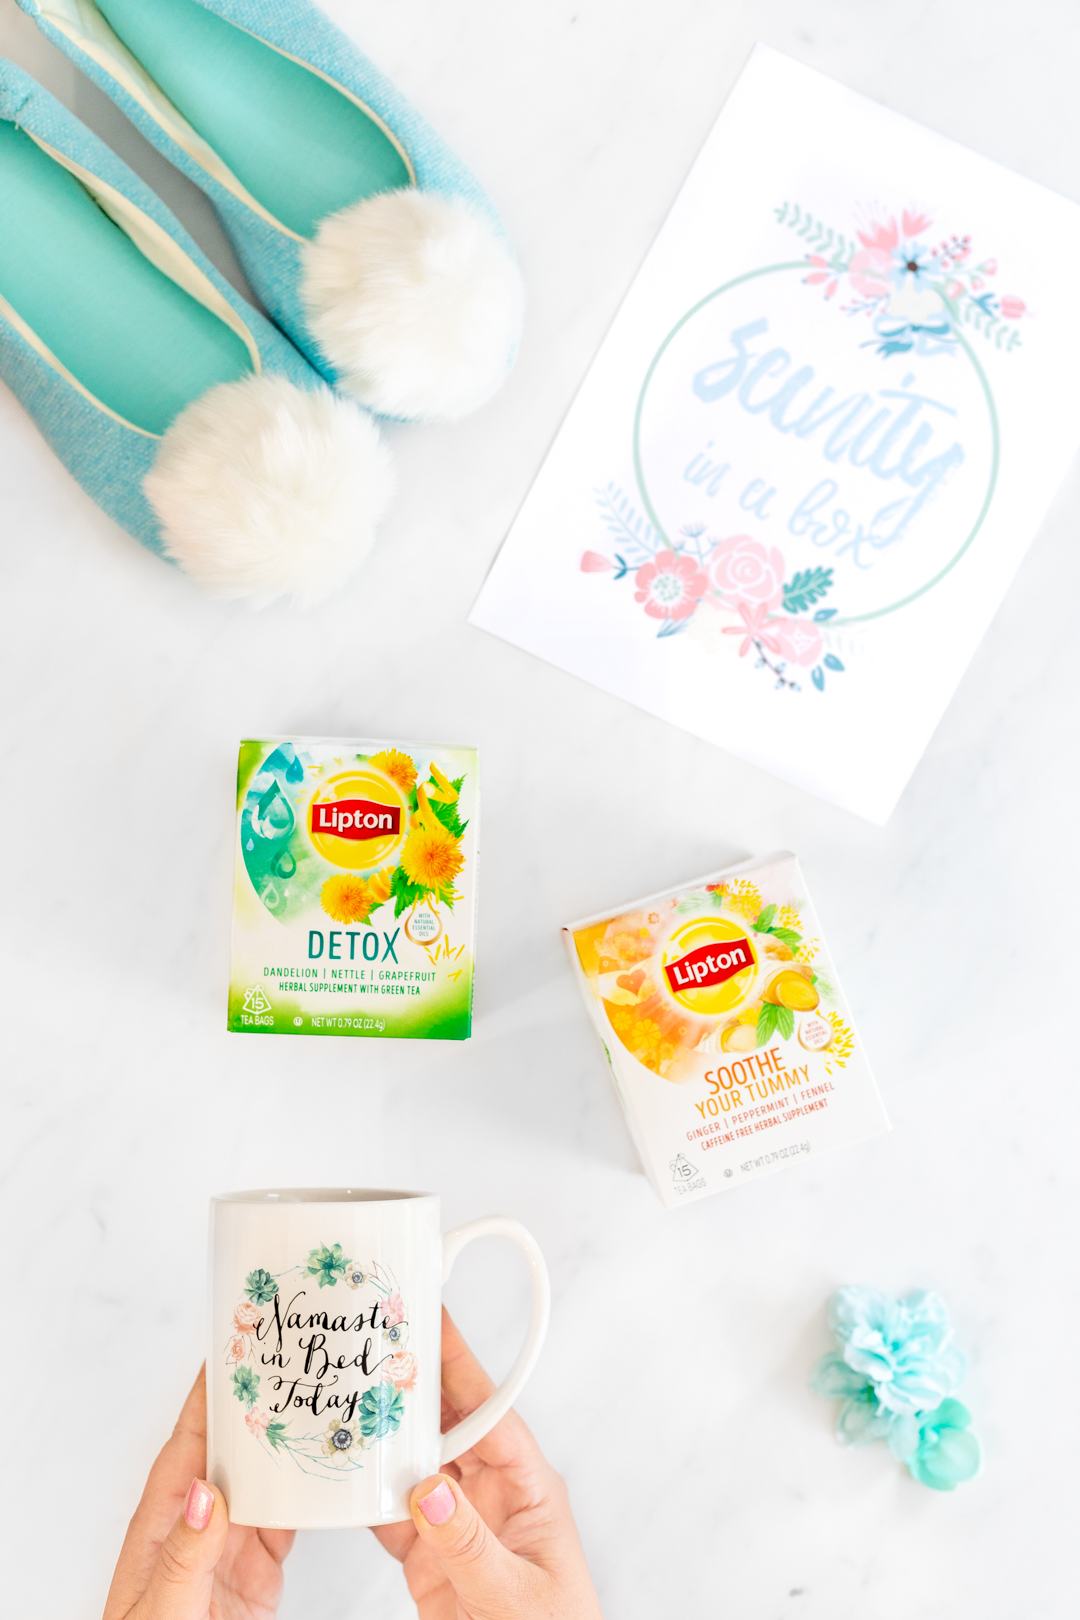 wellness teas, slippers and mug